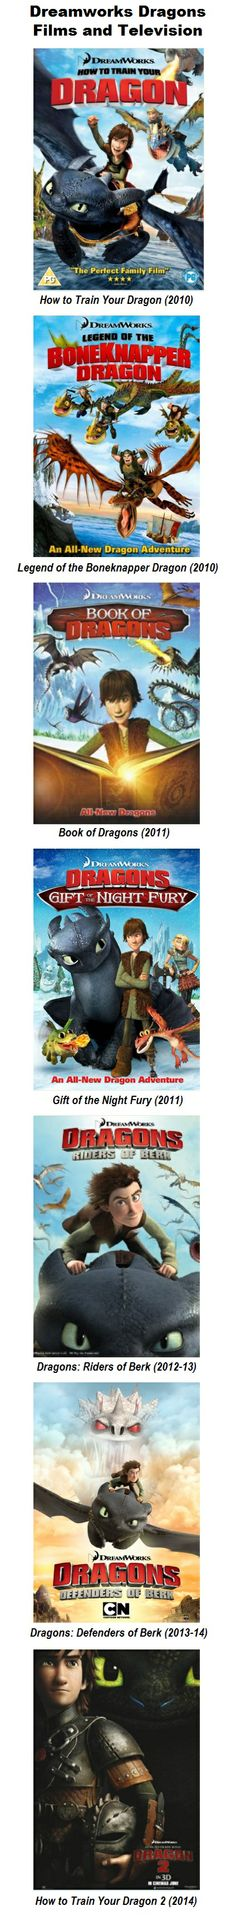 The Dreamworks Dragons franchise includes two films, three shorts and two episodic seasons.